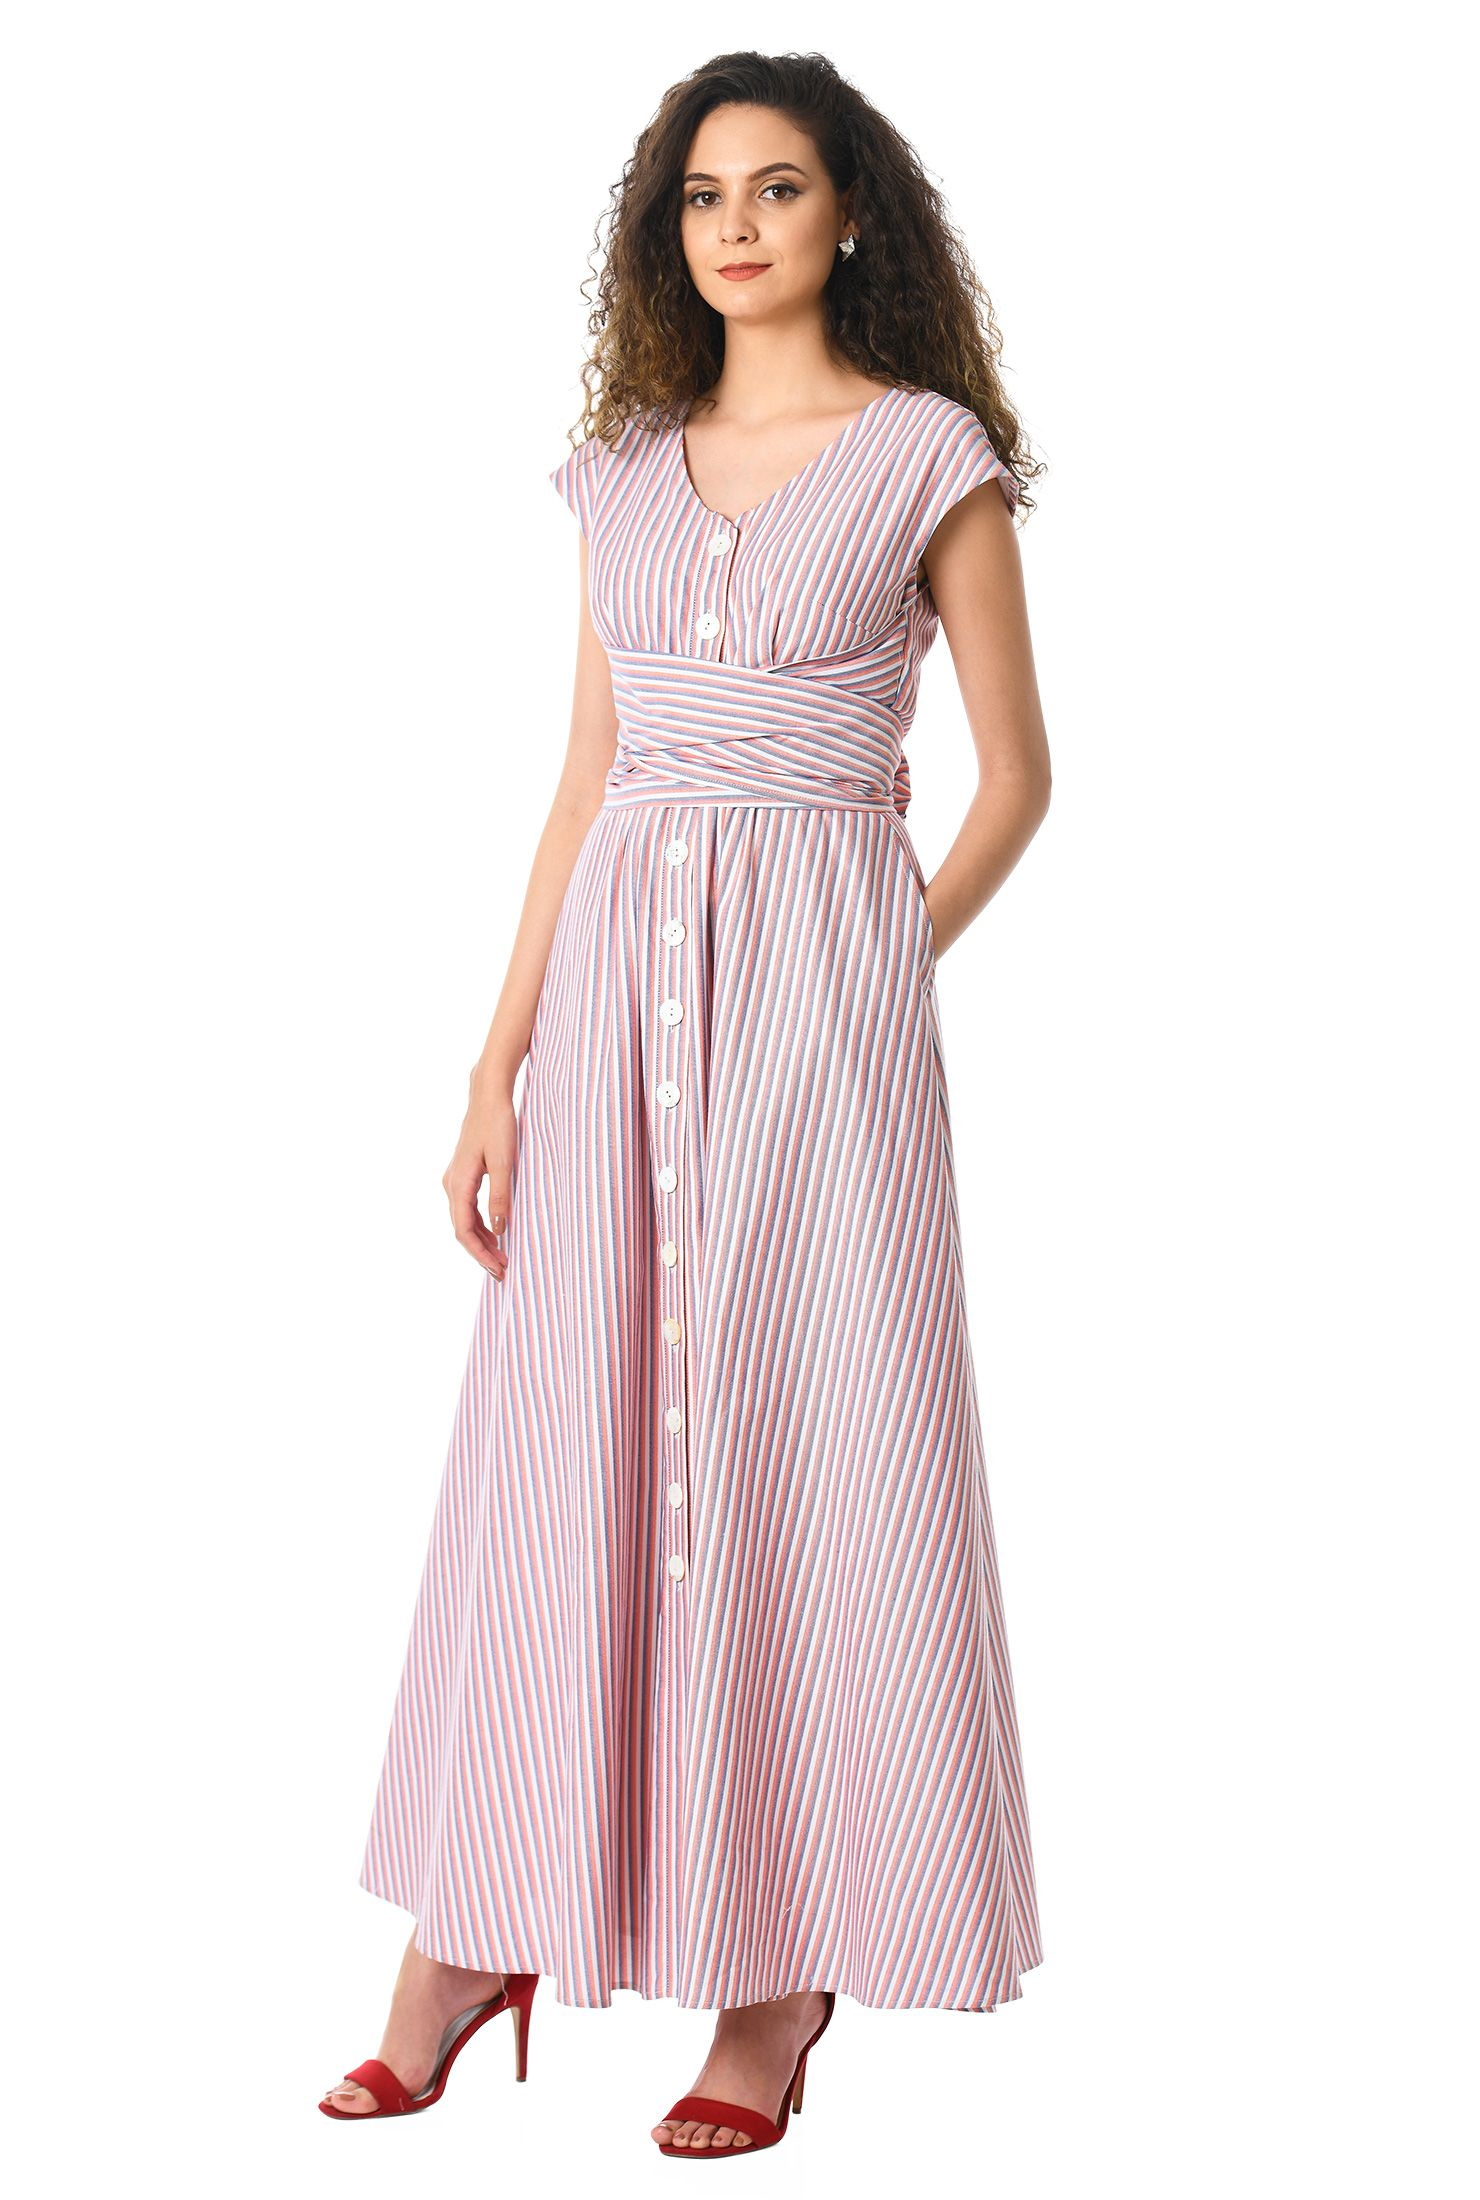 Sleeveless U Neck Loose Sundress In 2021 Casual Dresses For Women Solid Color Maxi Dresses Casual Dress [ 1000 x 1000 Pixel ]